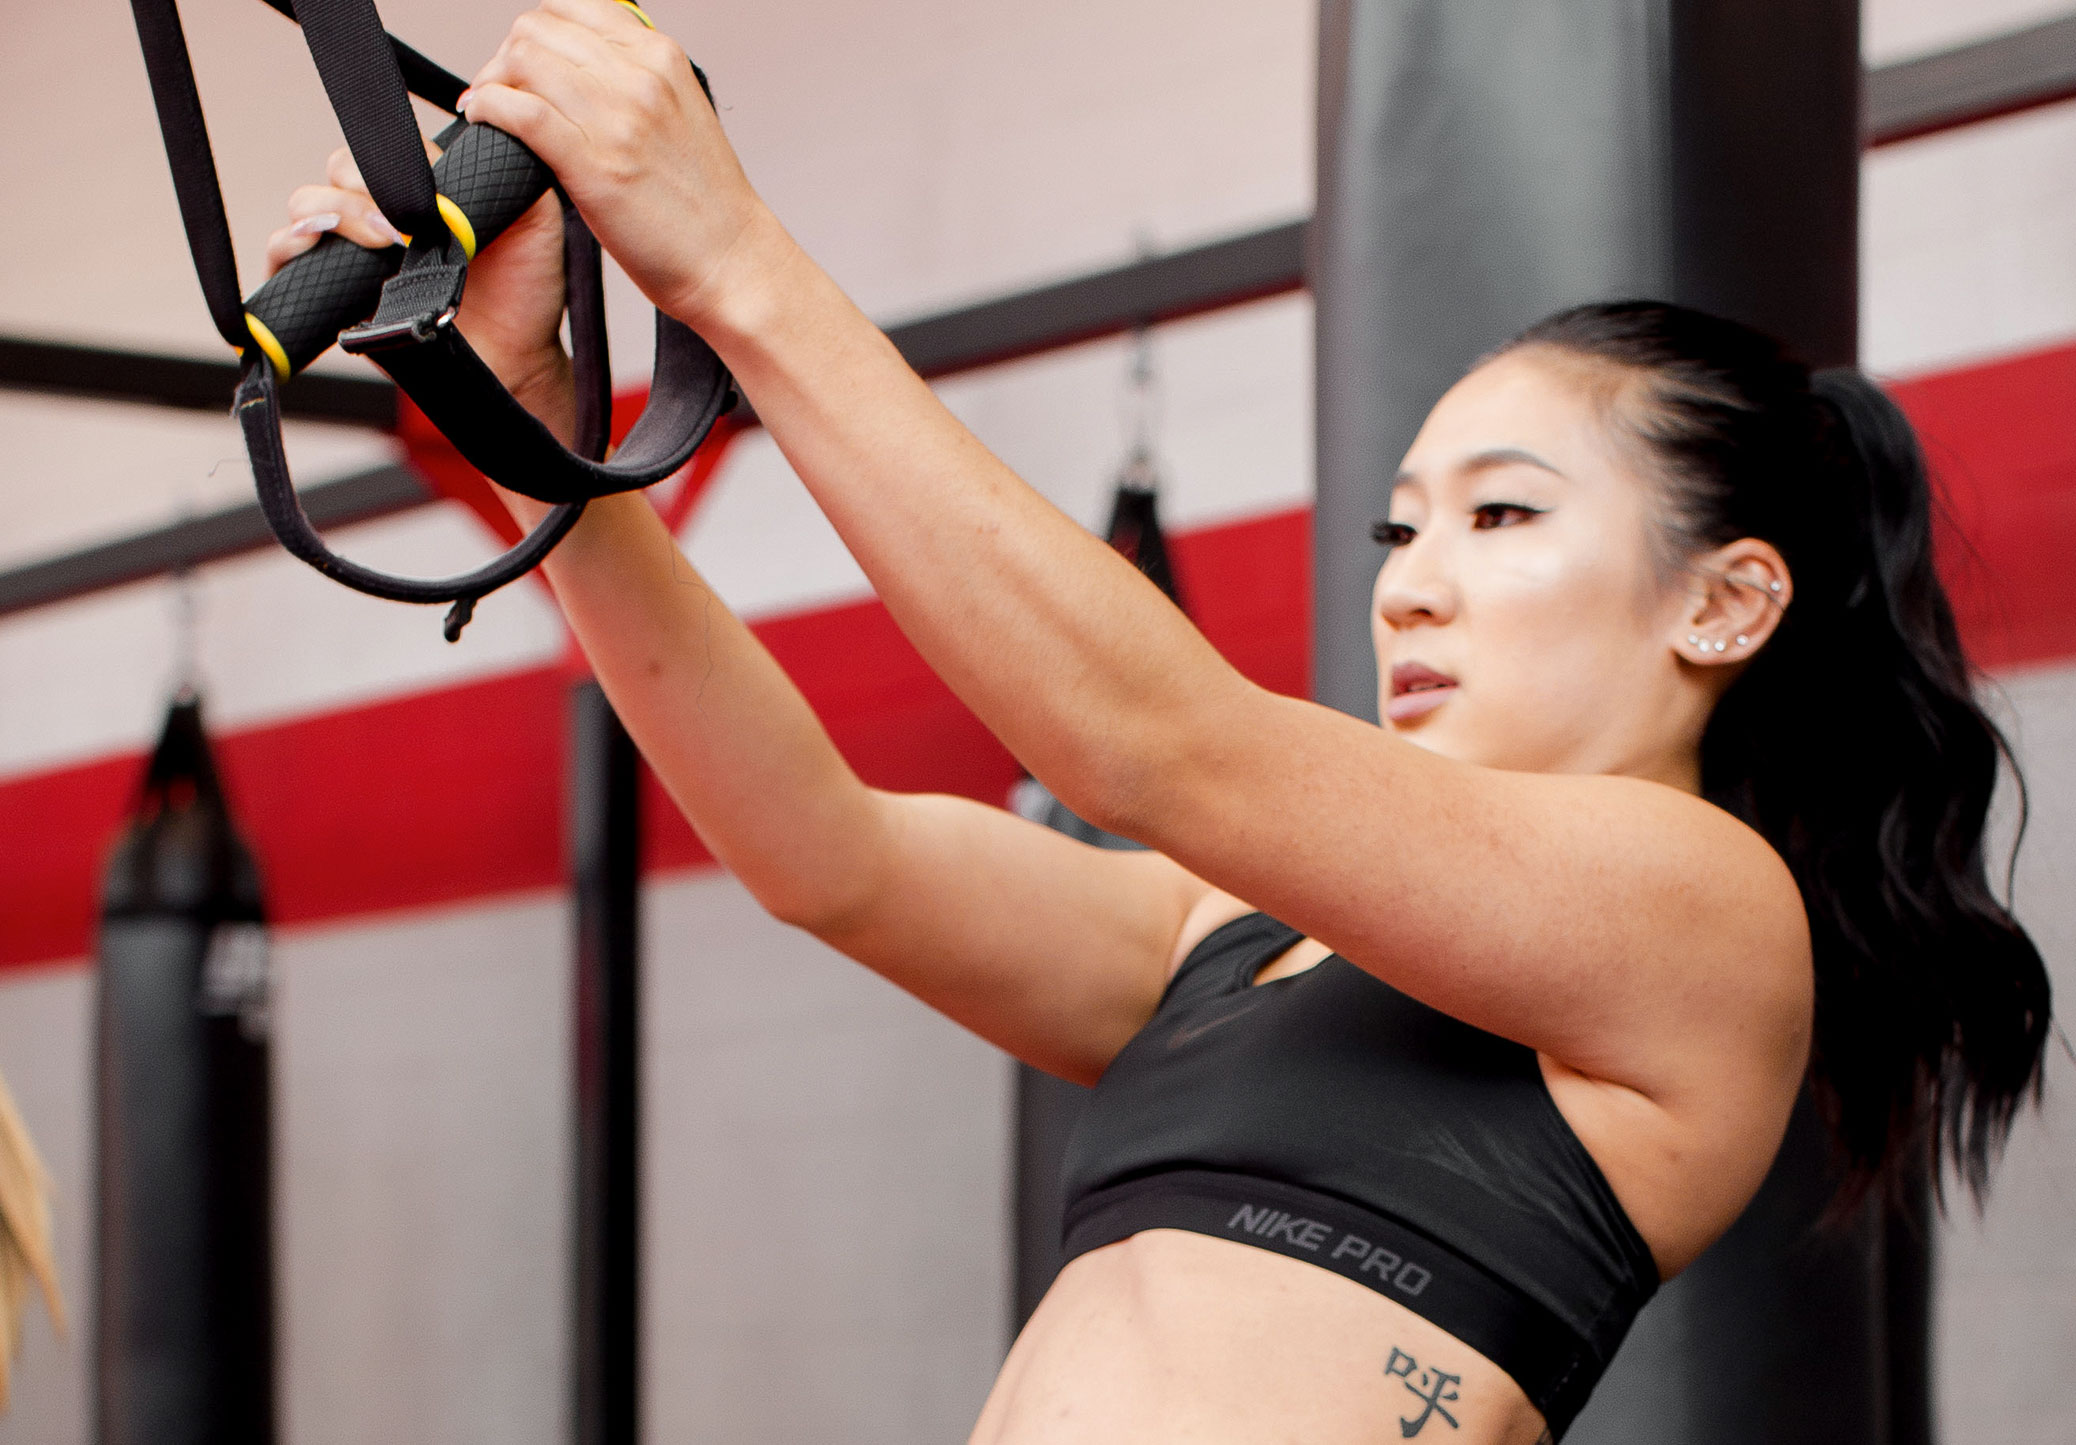 Member pulling herself with resistance band to practice for mma class